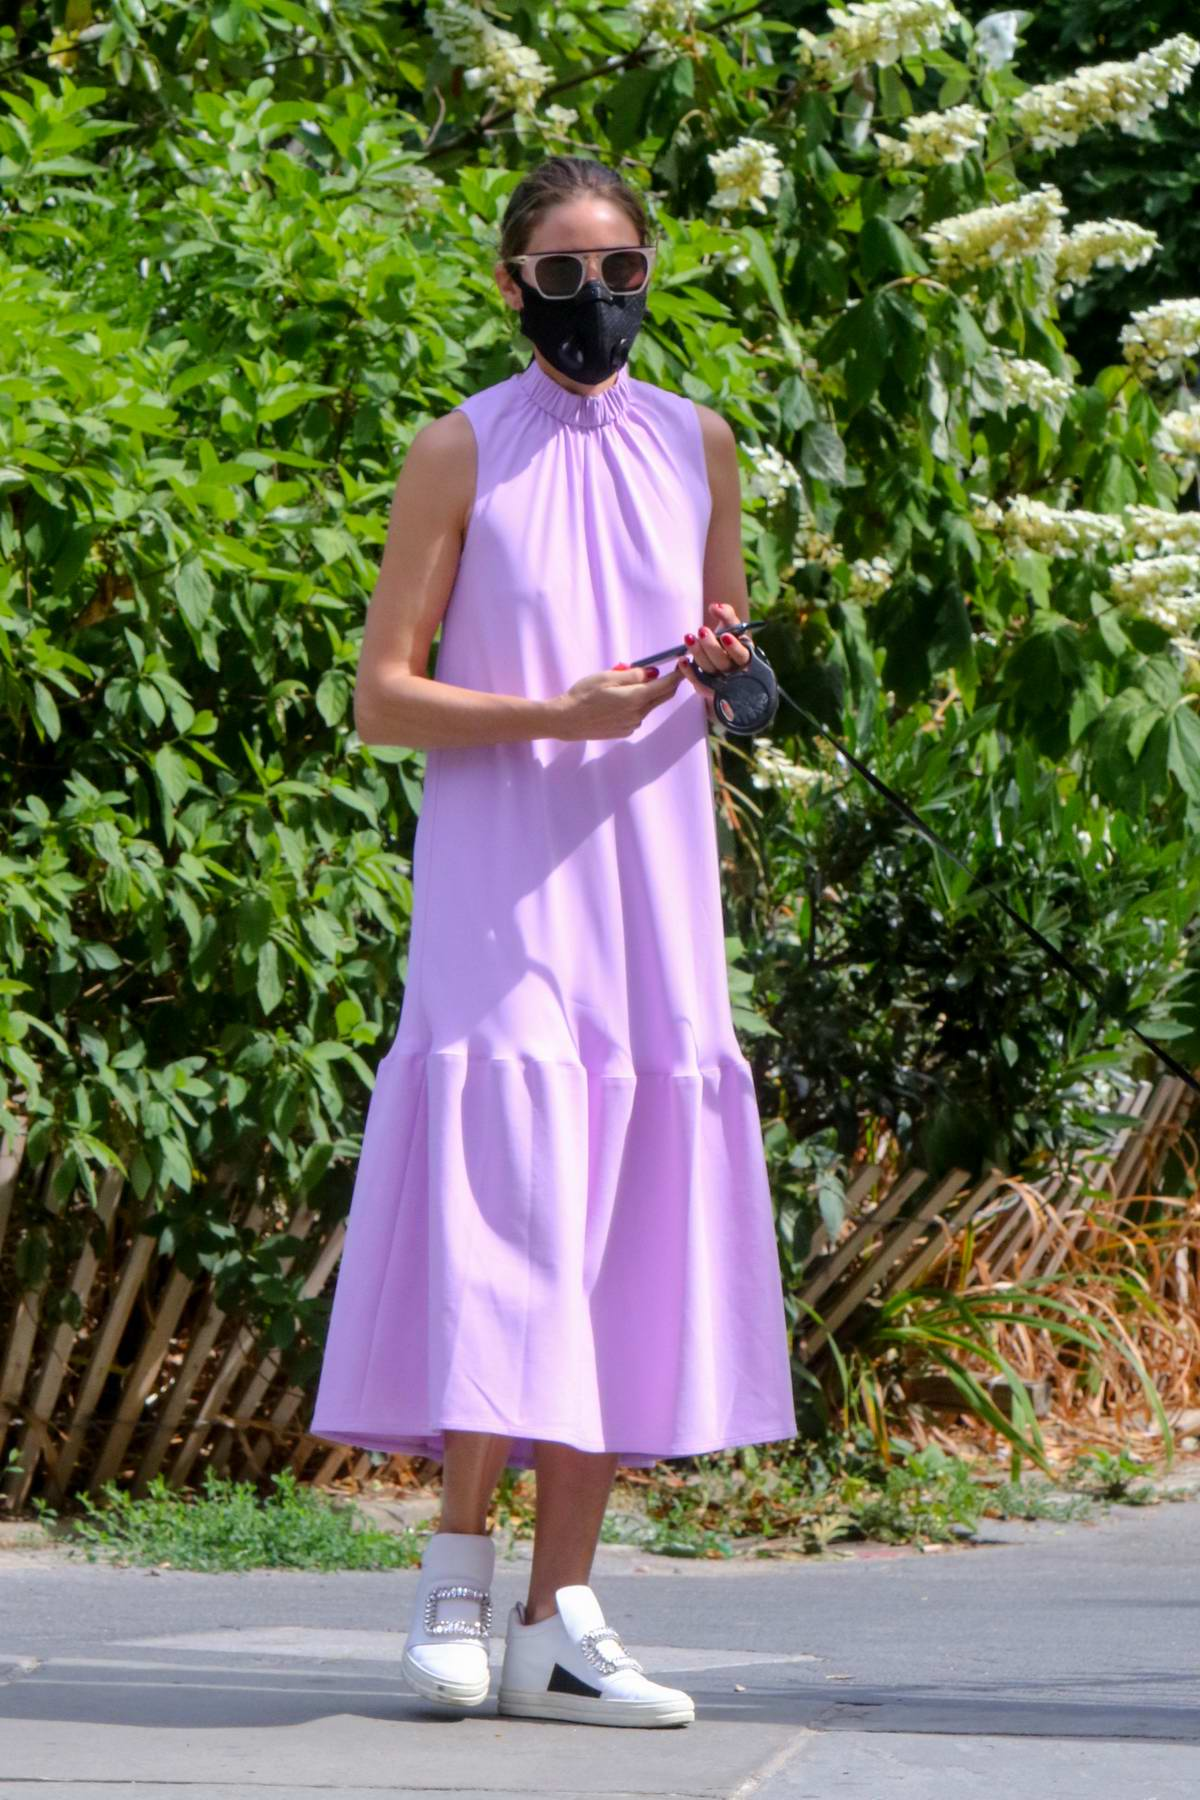 Olivia Palermo looks stunning in a lavender summer dress while out to walk her dog in Brooklyn, New York